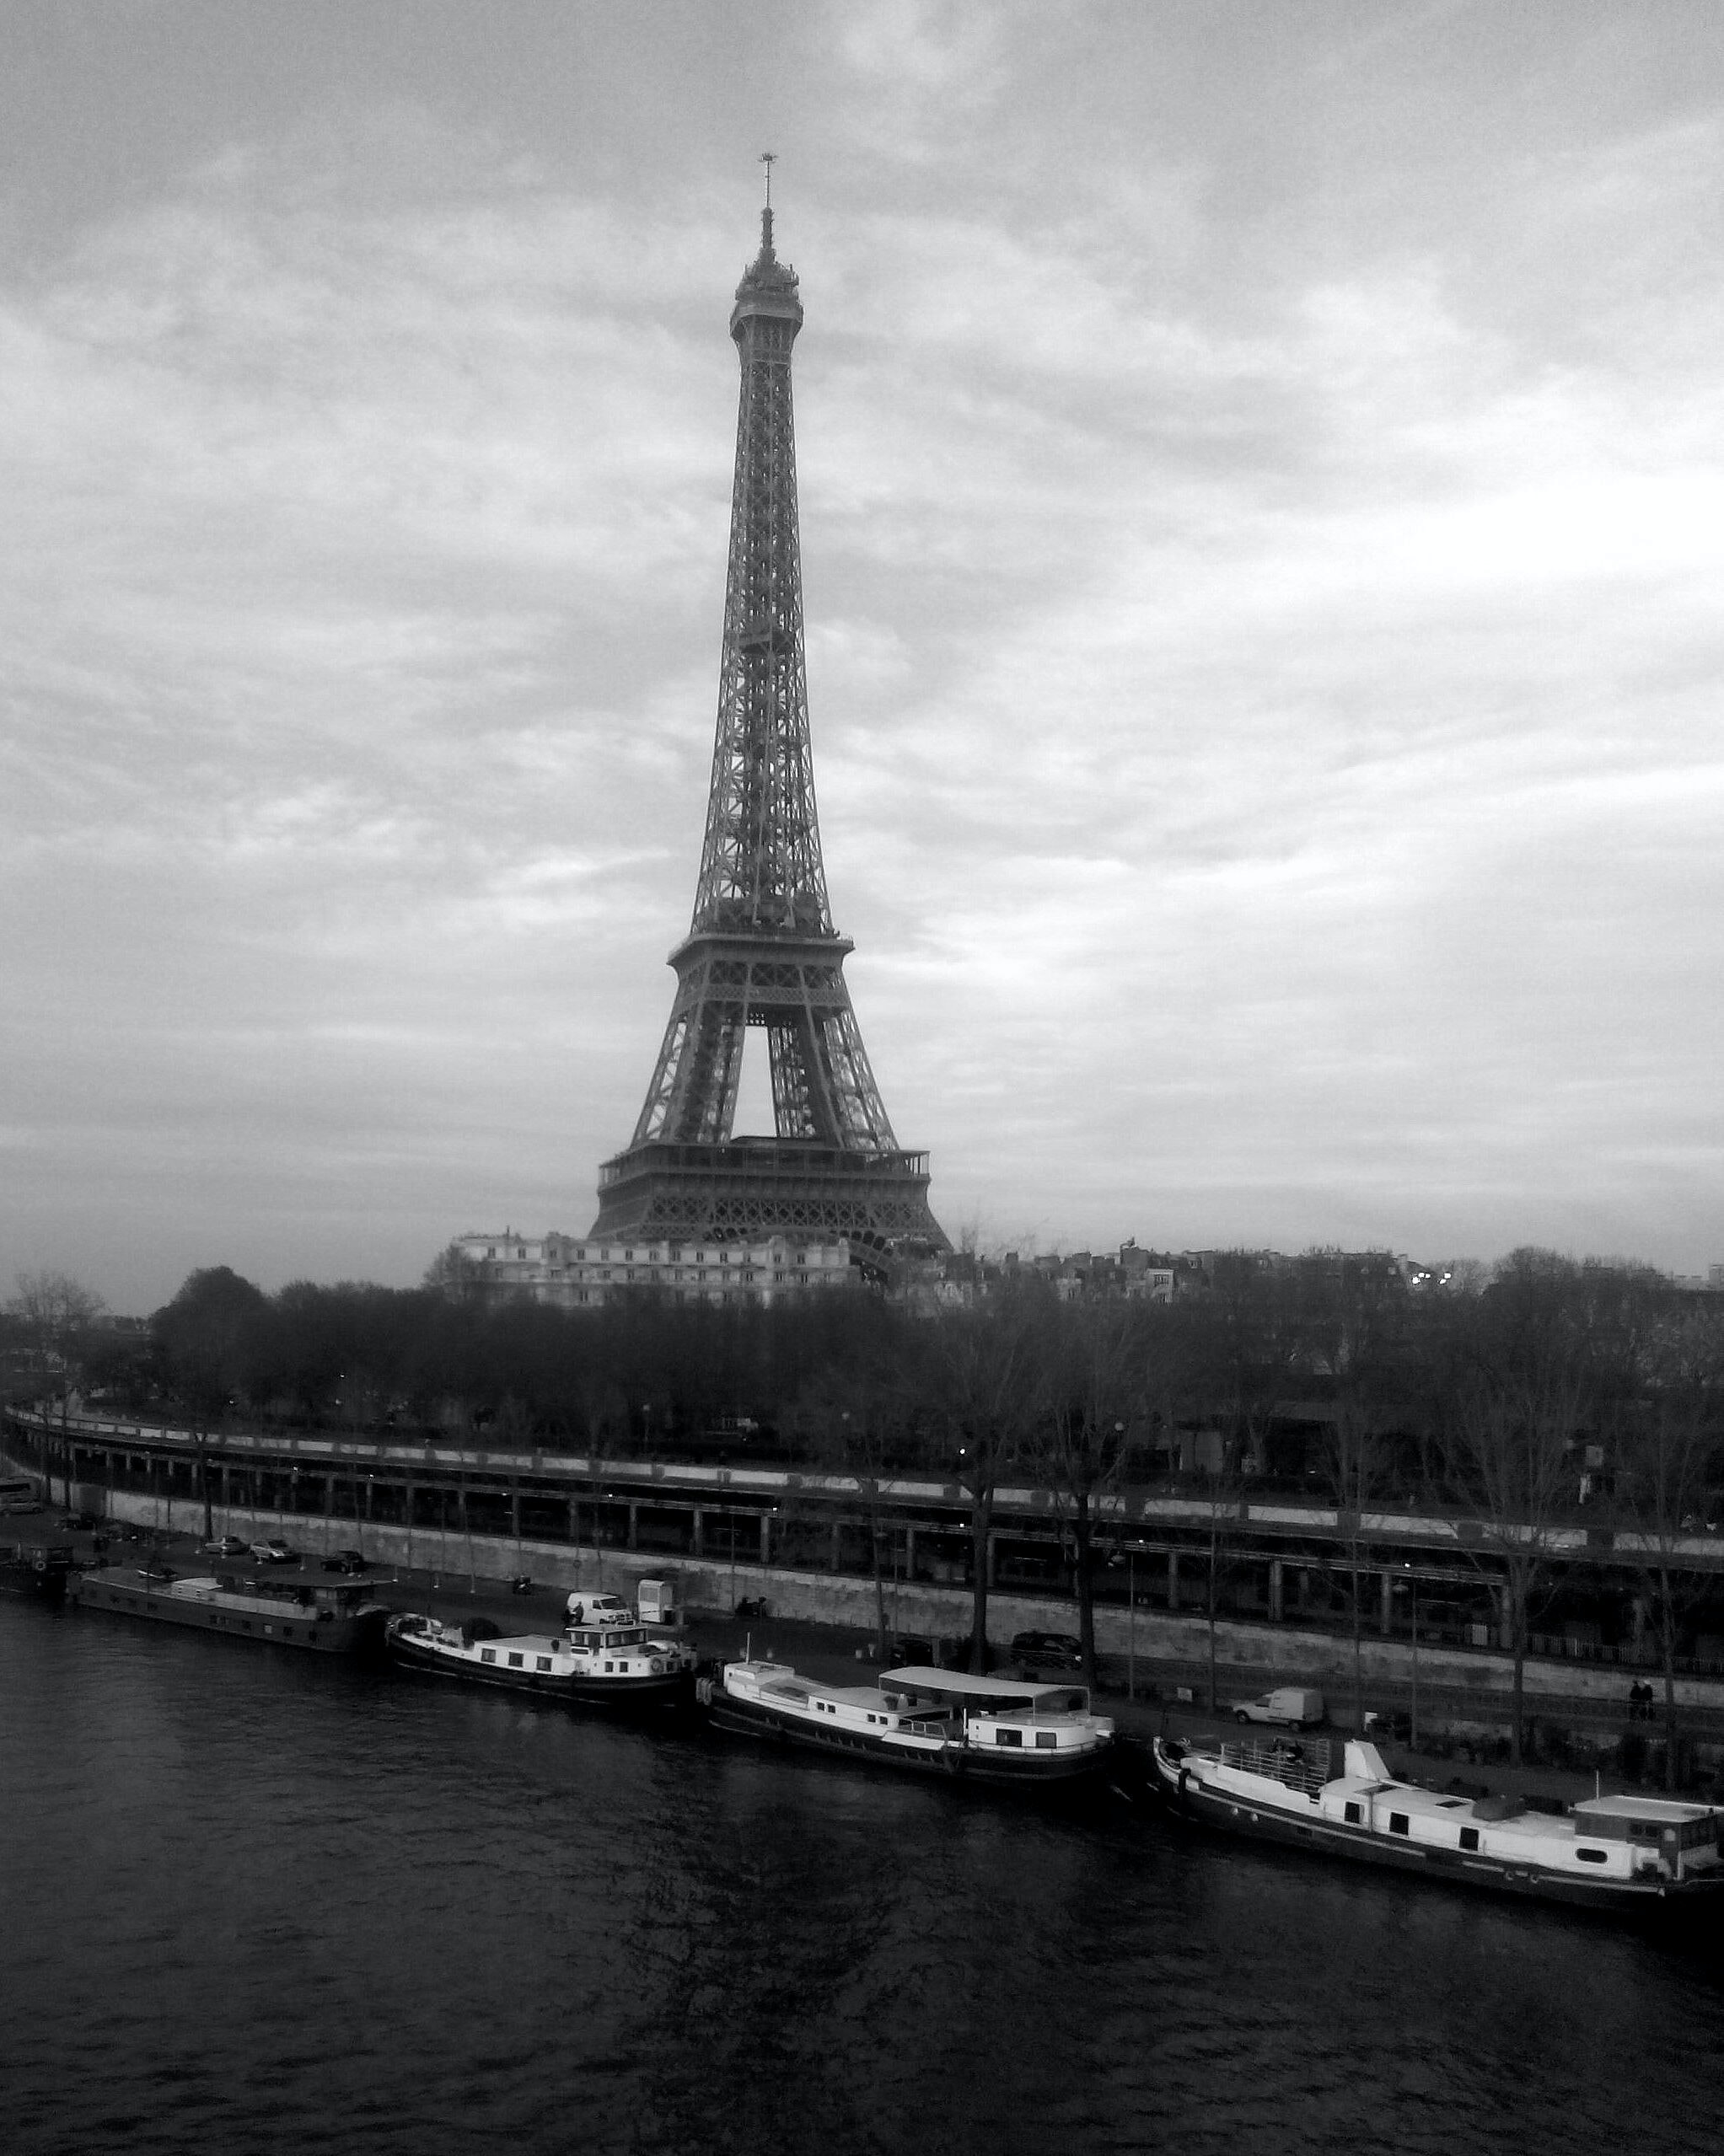 Black and white Eiffel Tower with boats along the river